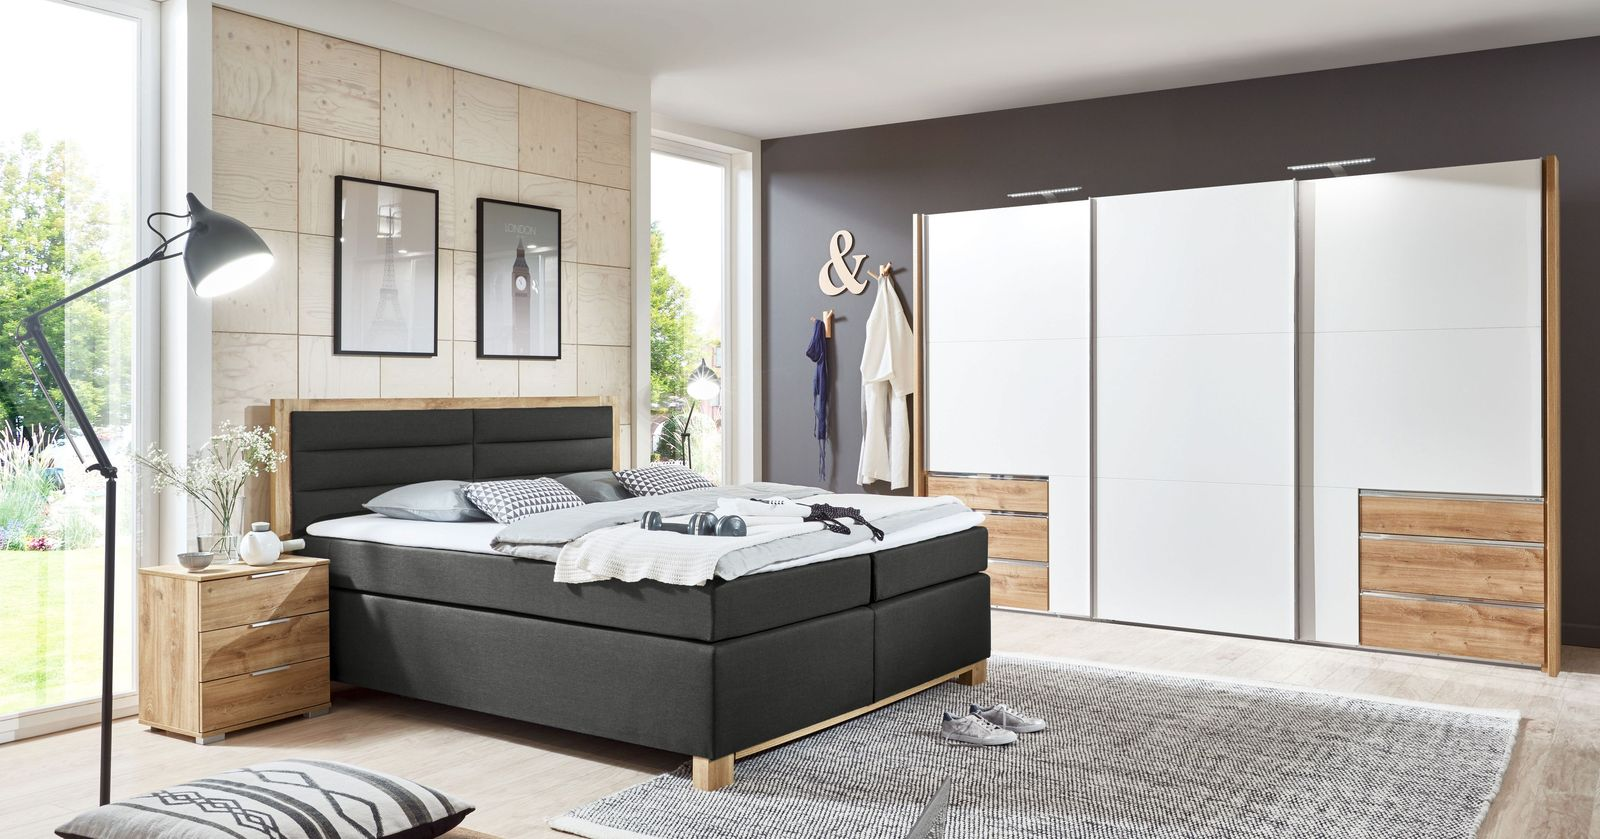 kleiderschrank kleiderschr nke online kaufen. Black Bedroom Furniture Sets. Home Design Ideas